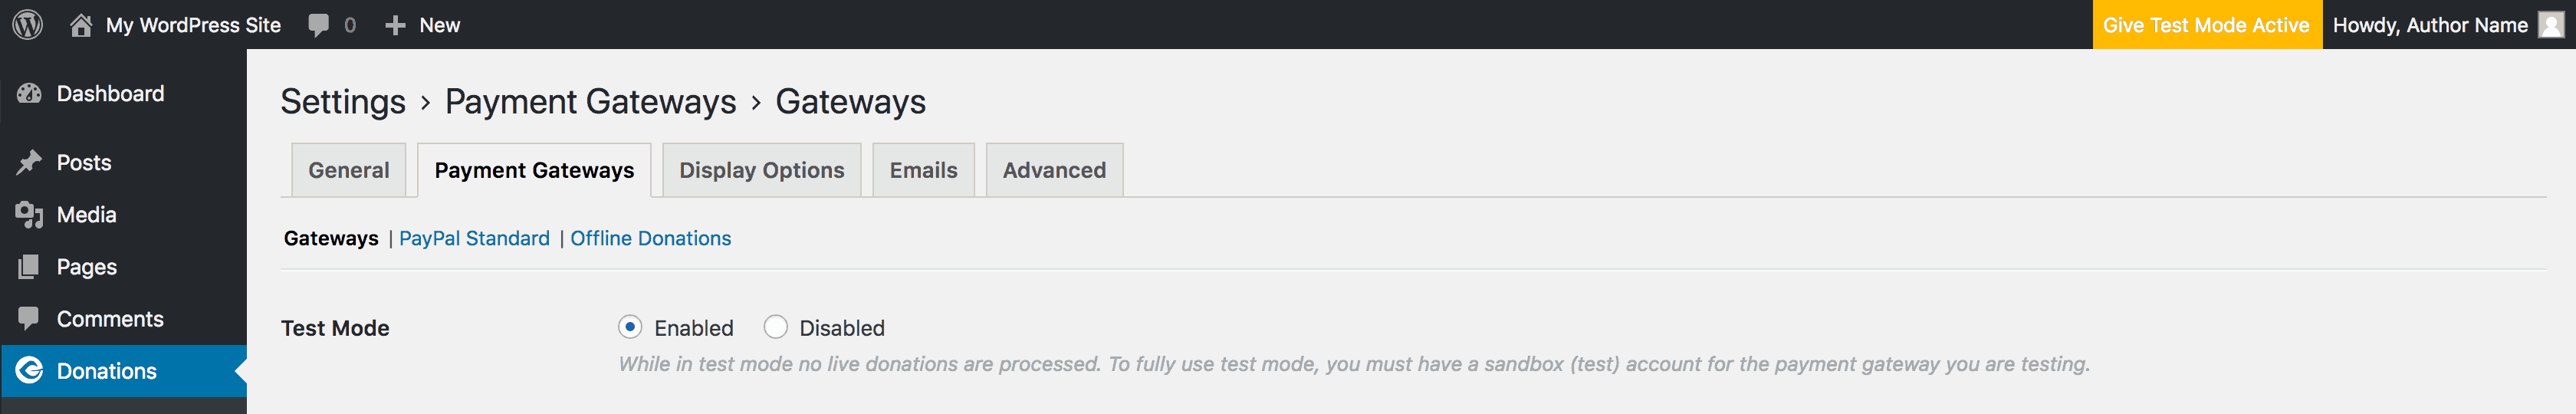 The Test Mode settings in Give.